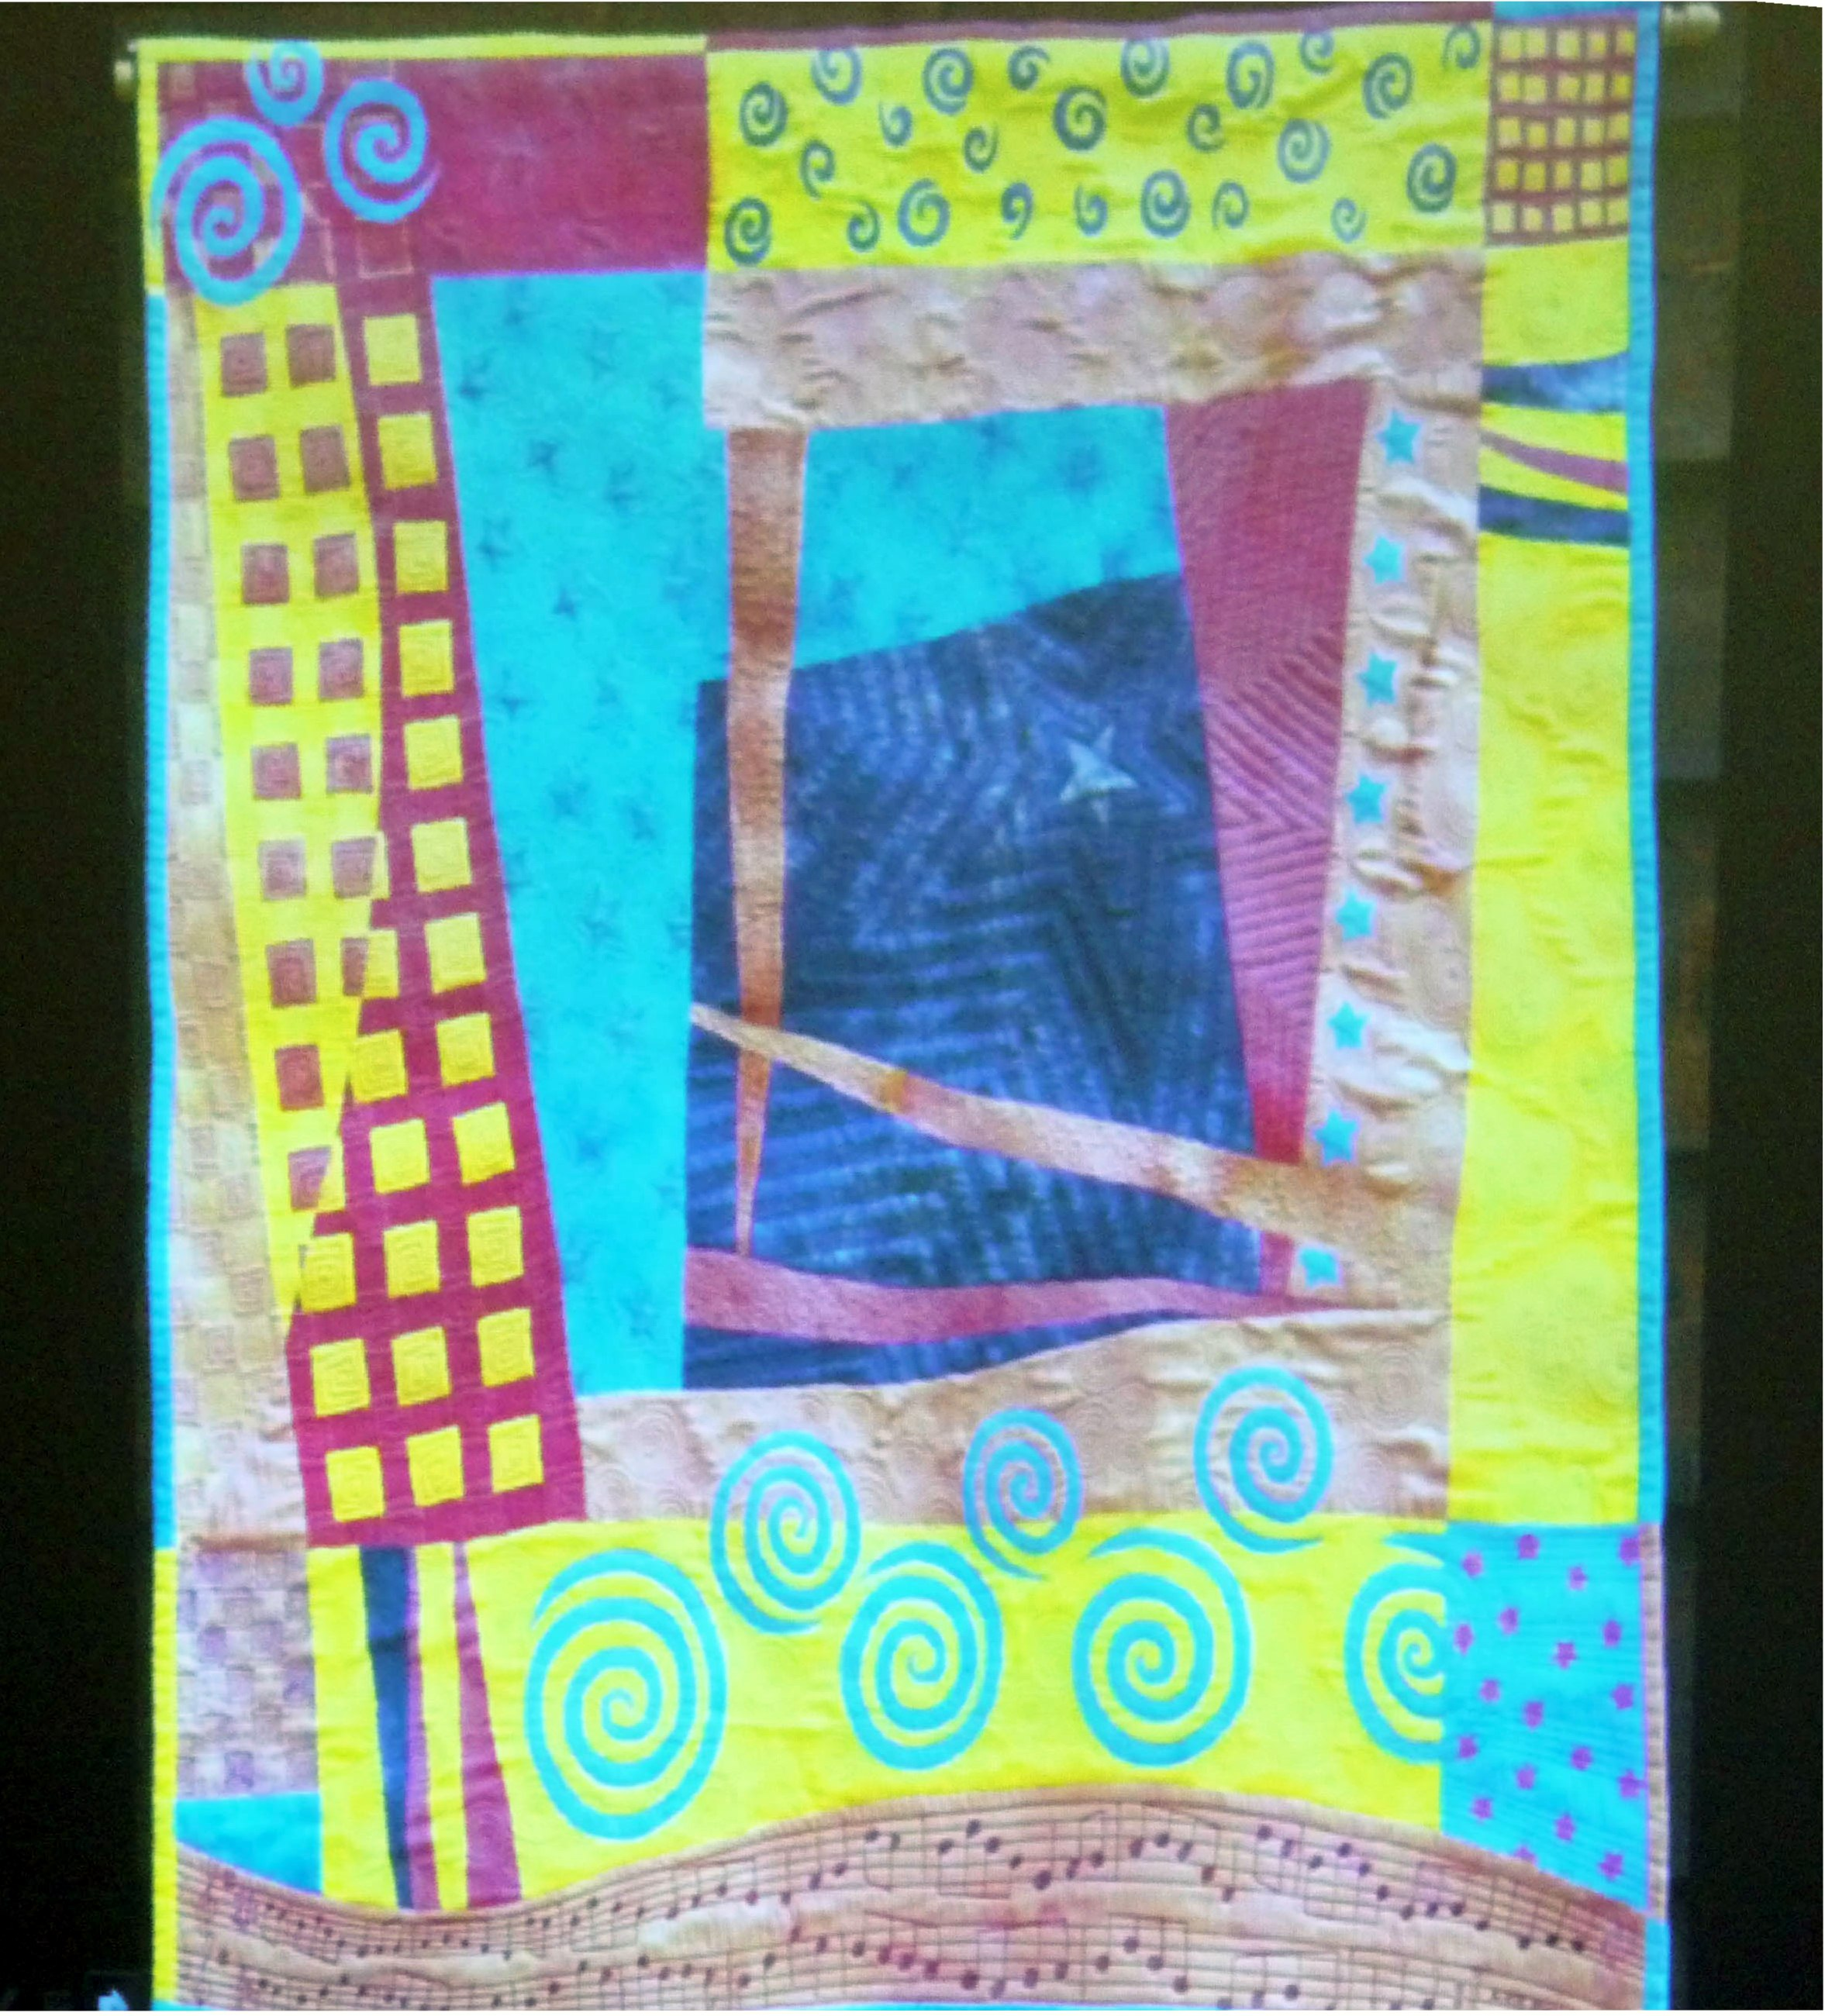 slide by Bobby Britnall showing a quilt with a musical influence